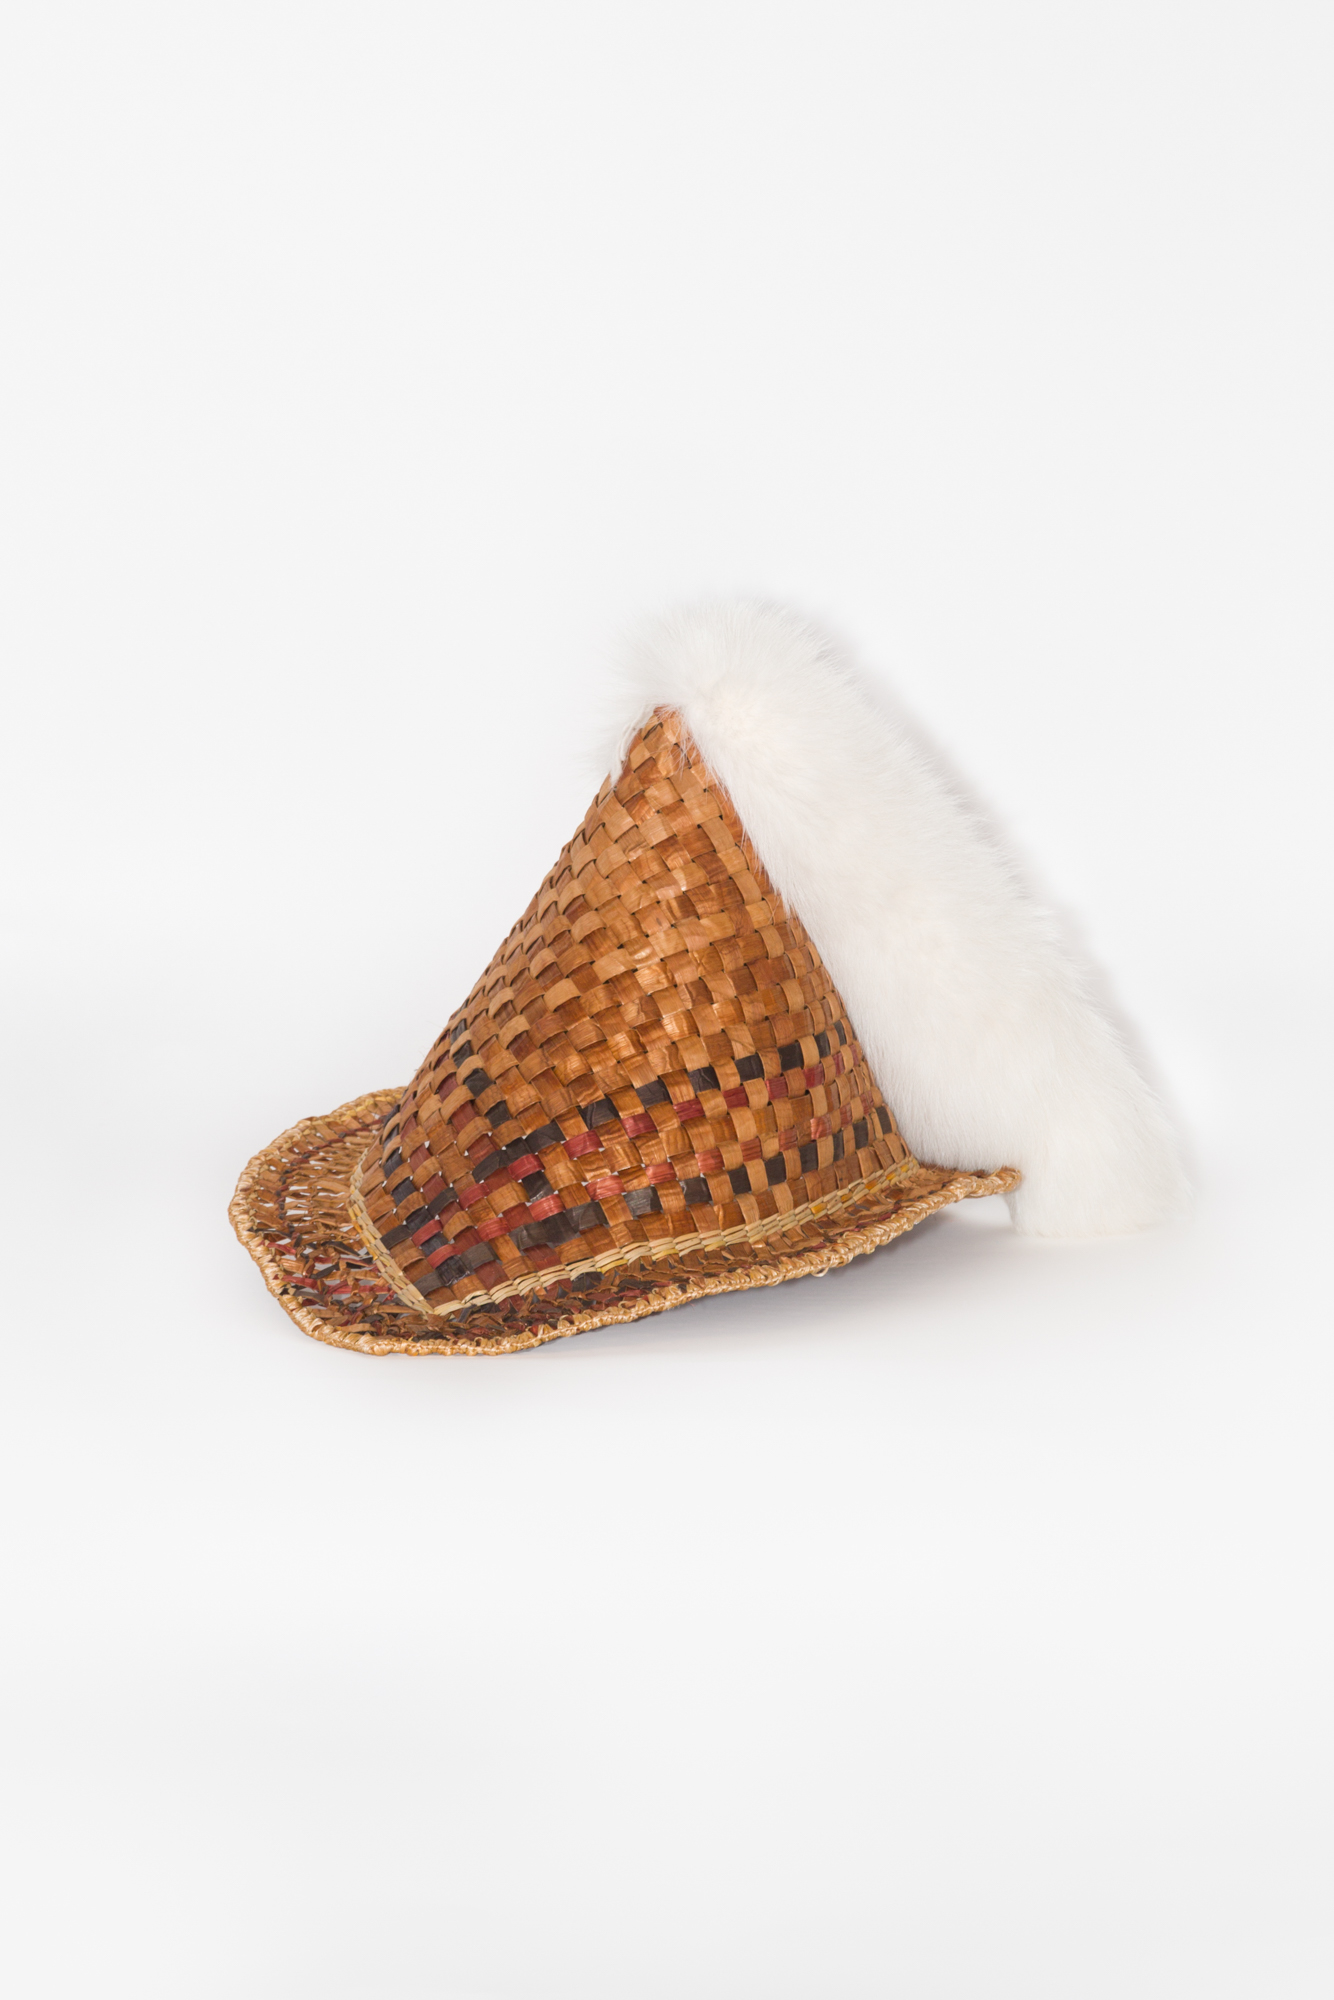 Tuhong (Chamoru fishing hat) (alternate view)